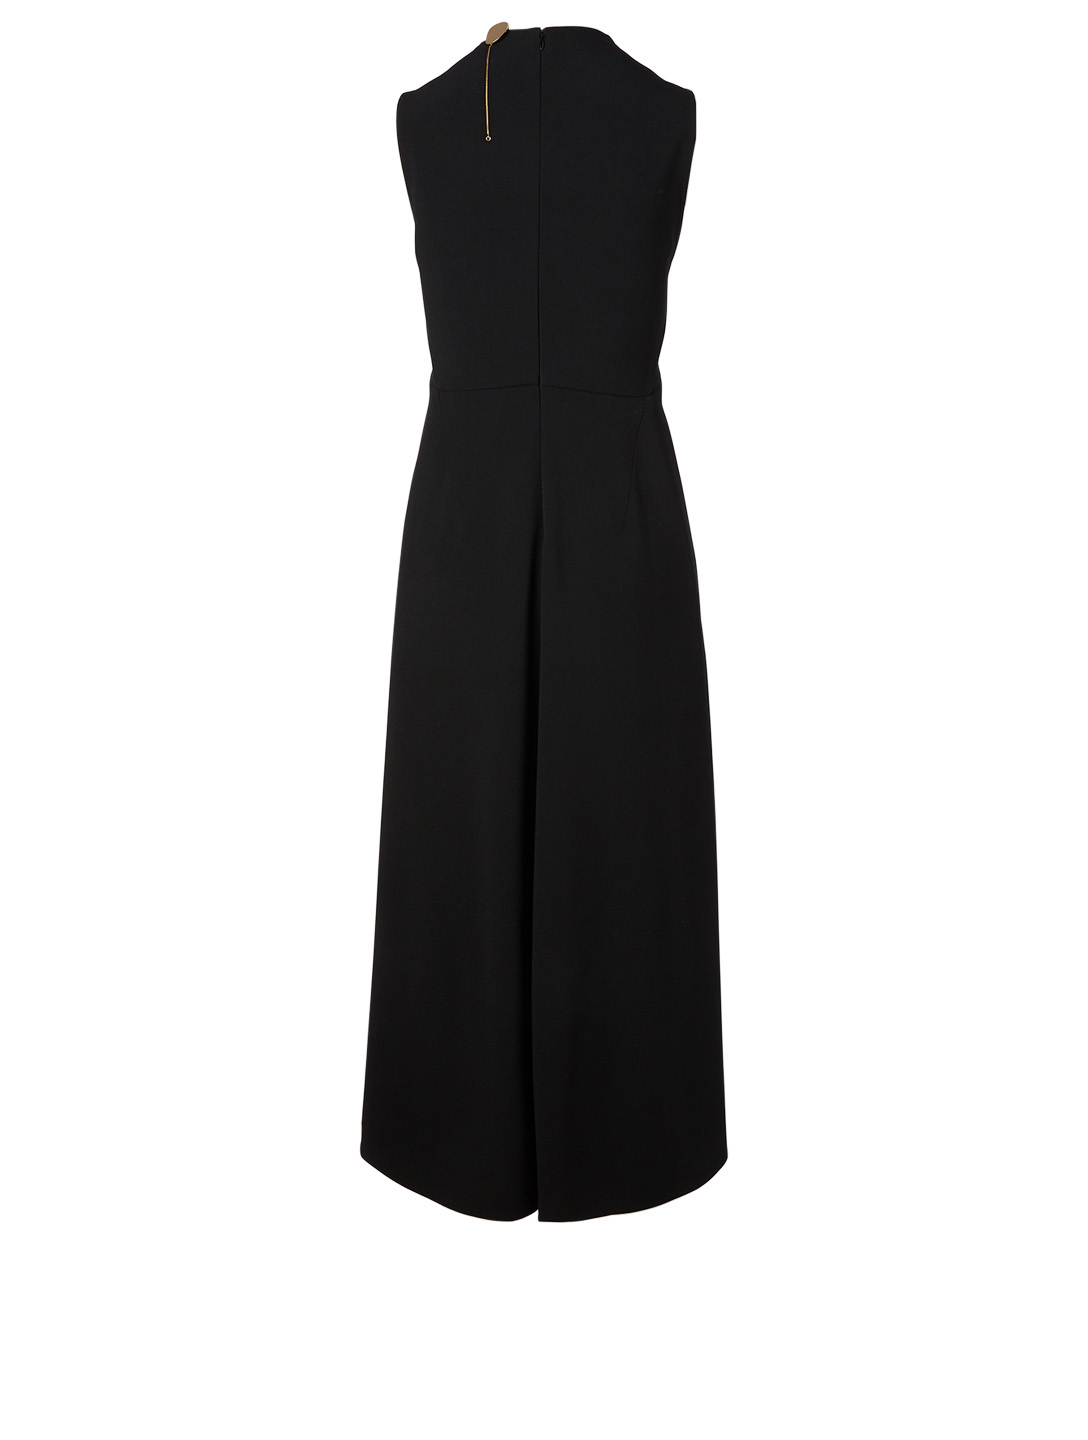 VICTORIA BECKHAM Sleeveless Midi Dress Women's Black